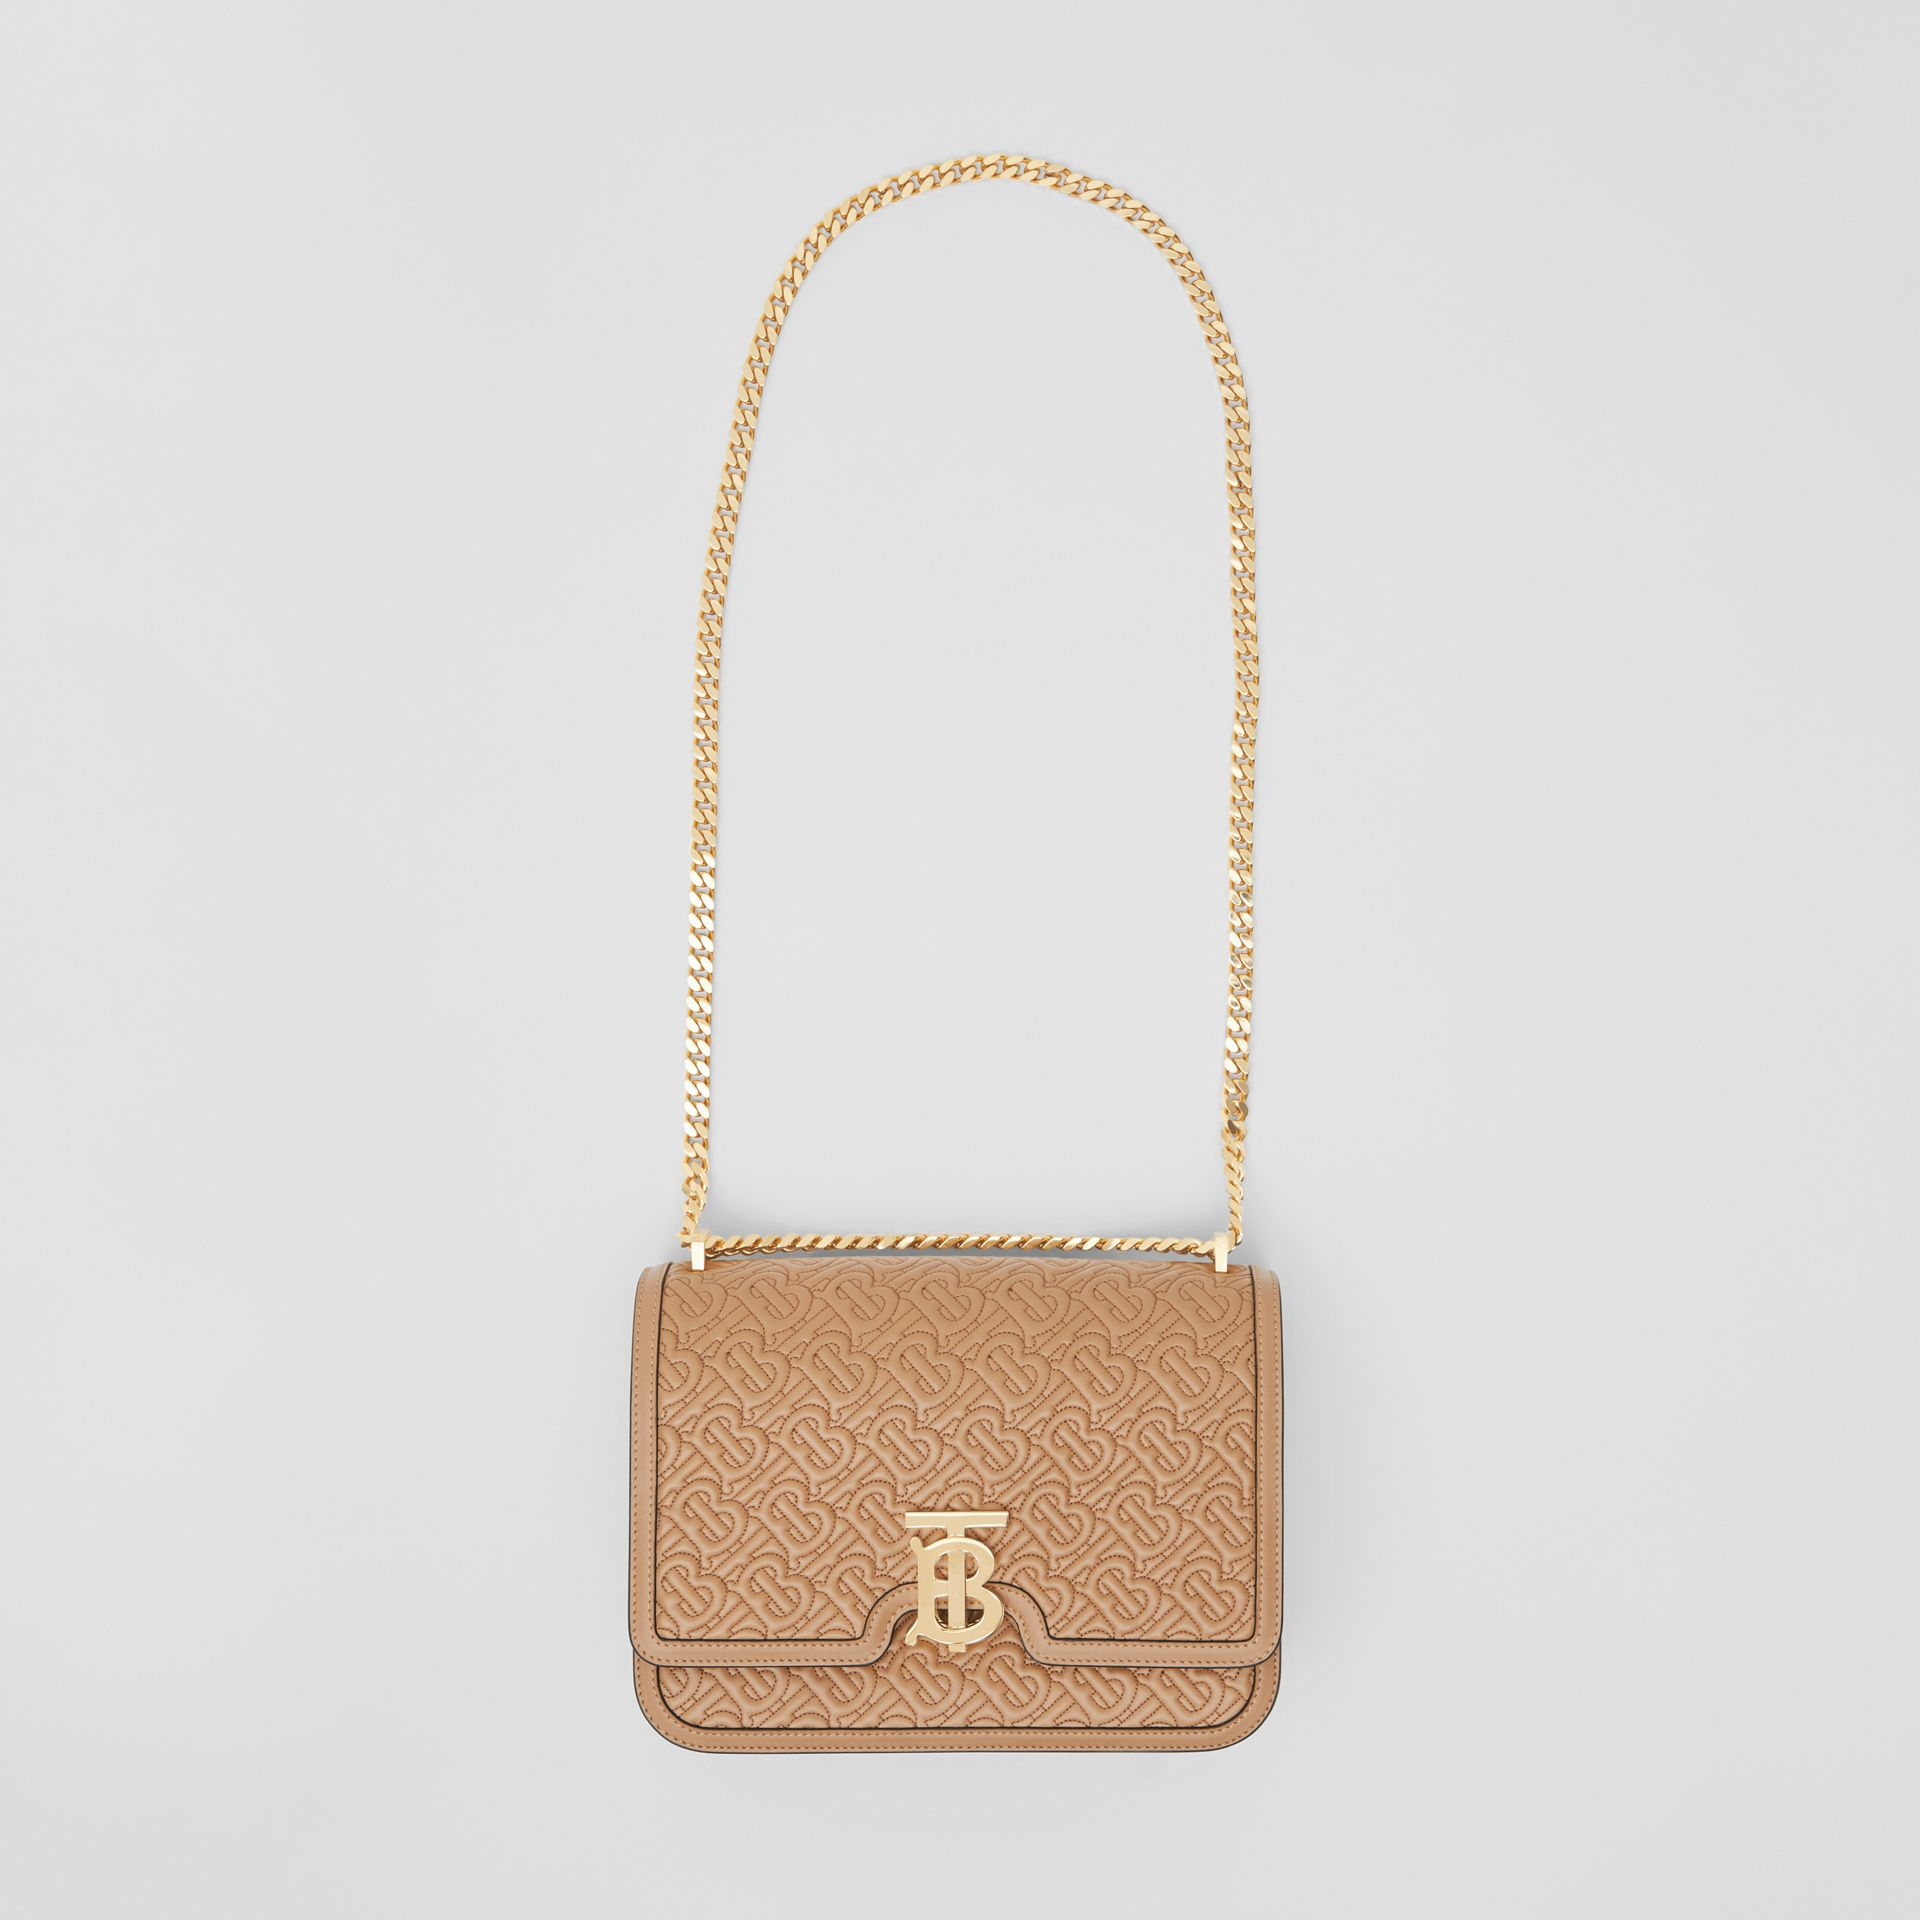 Medium Quilted Monogram Lambskin TB Bag in Honey - Women | Burberry Hong Kong S.A.R. - gallery image 3